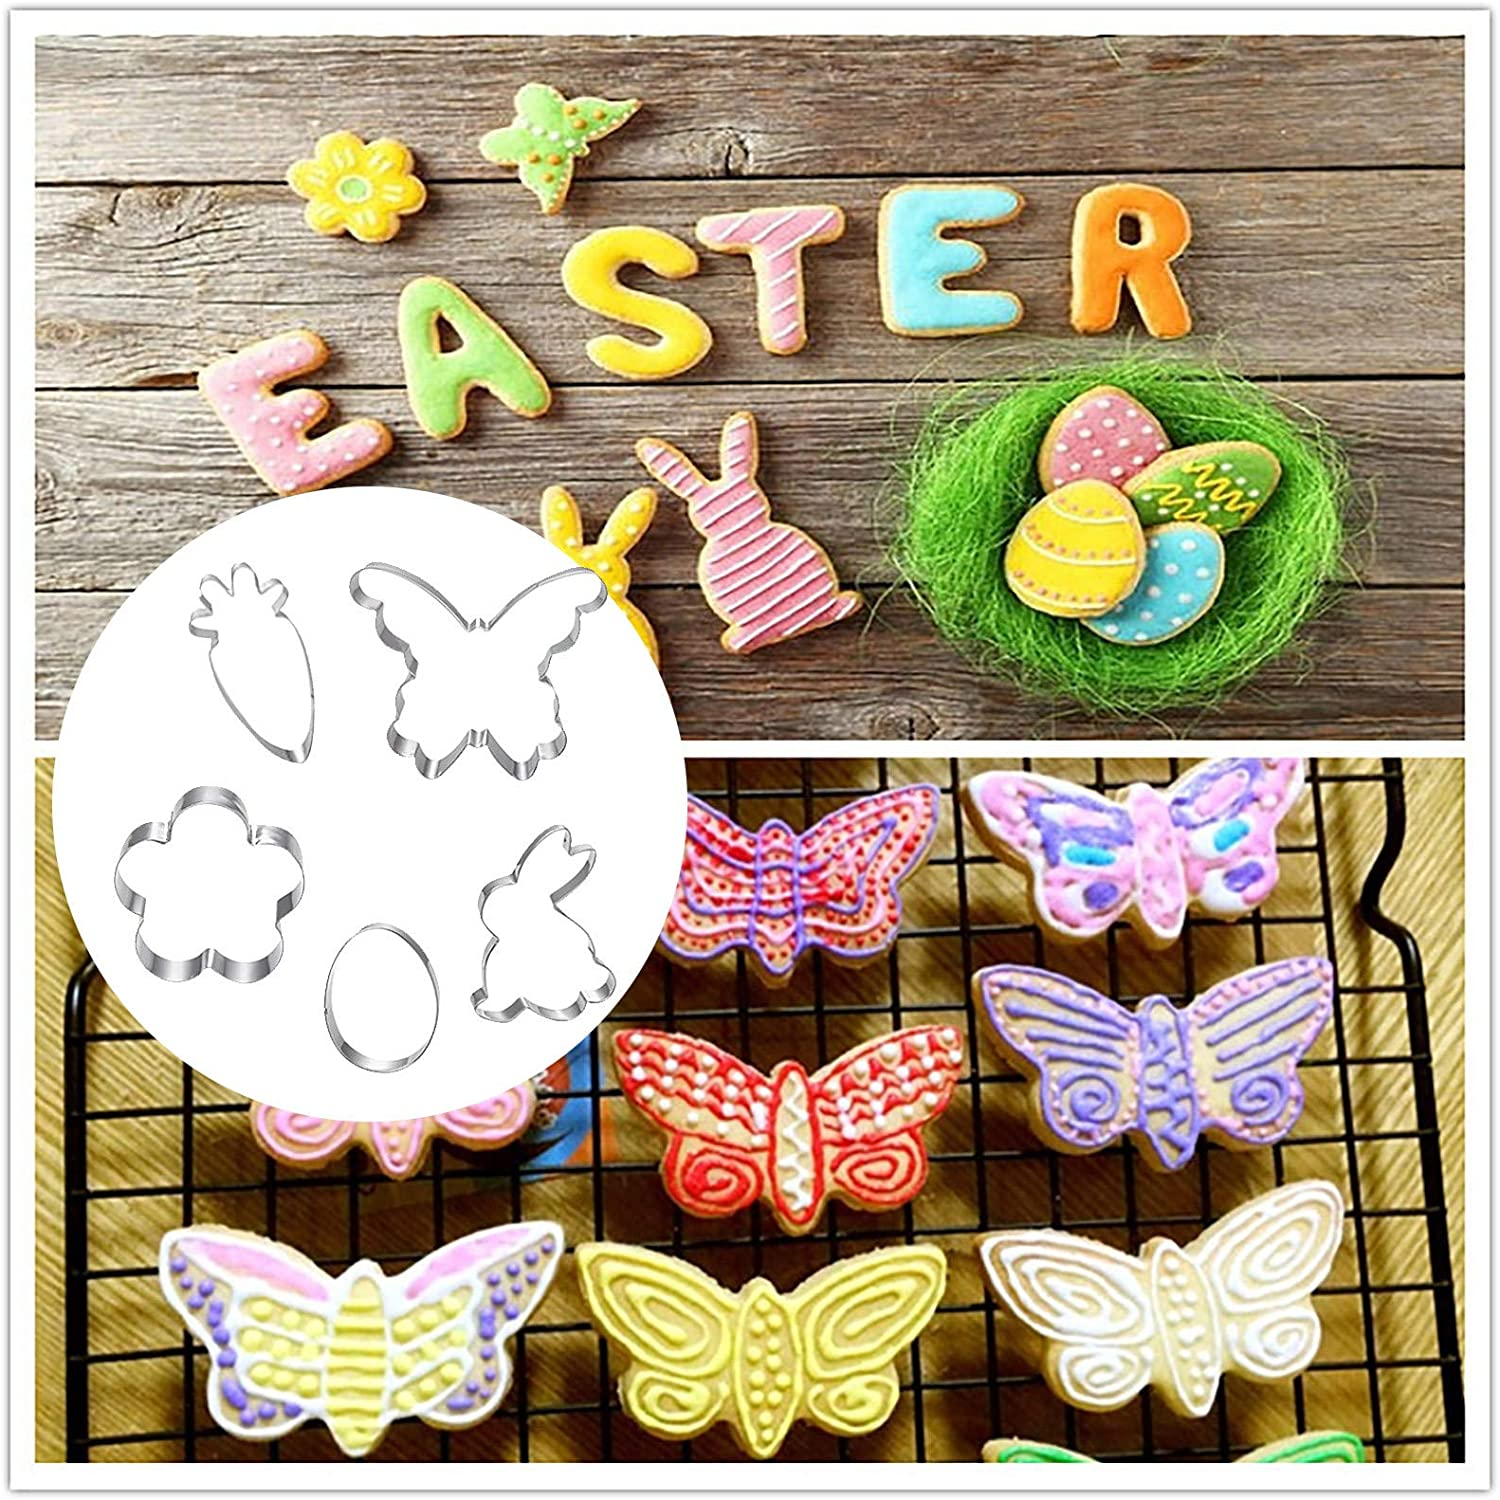 YIlanglang Easter Cookie Mould Stainless Steel Cake Mould Fun Cookie Cutters, Butterfly Cookie Cutter Set, Chocolate Mold Baking DIY Mold Food-Grade Stainless Steel Kitchen Baking Tools